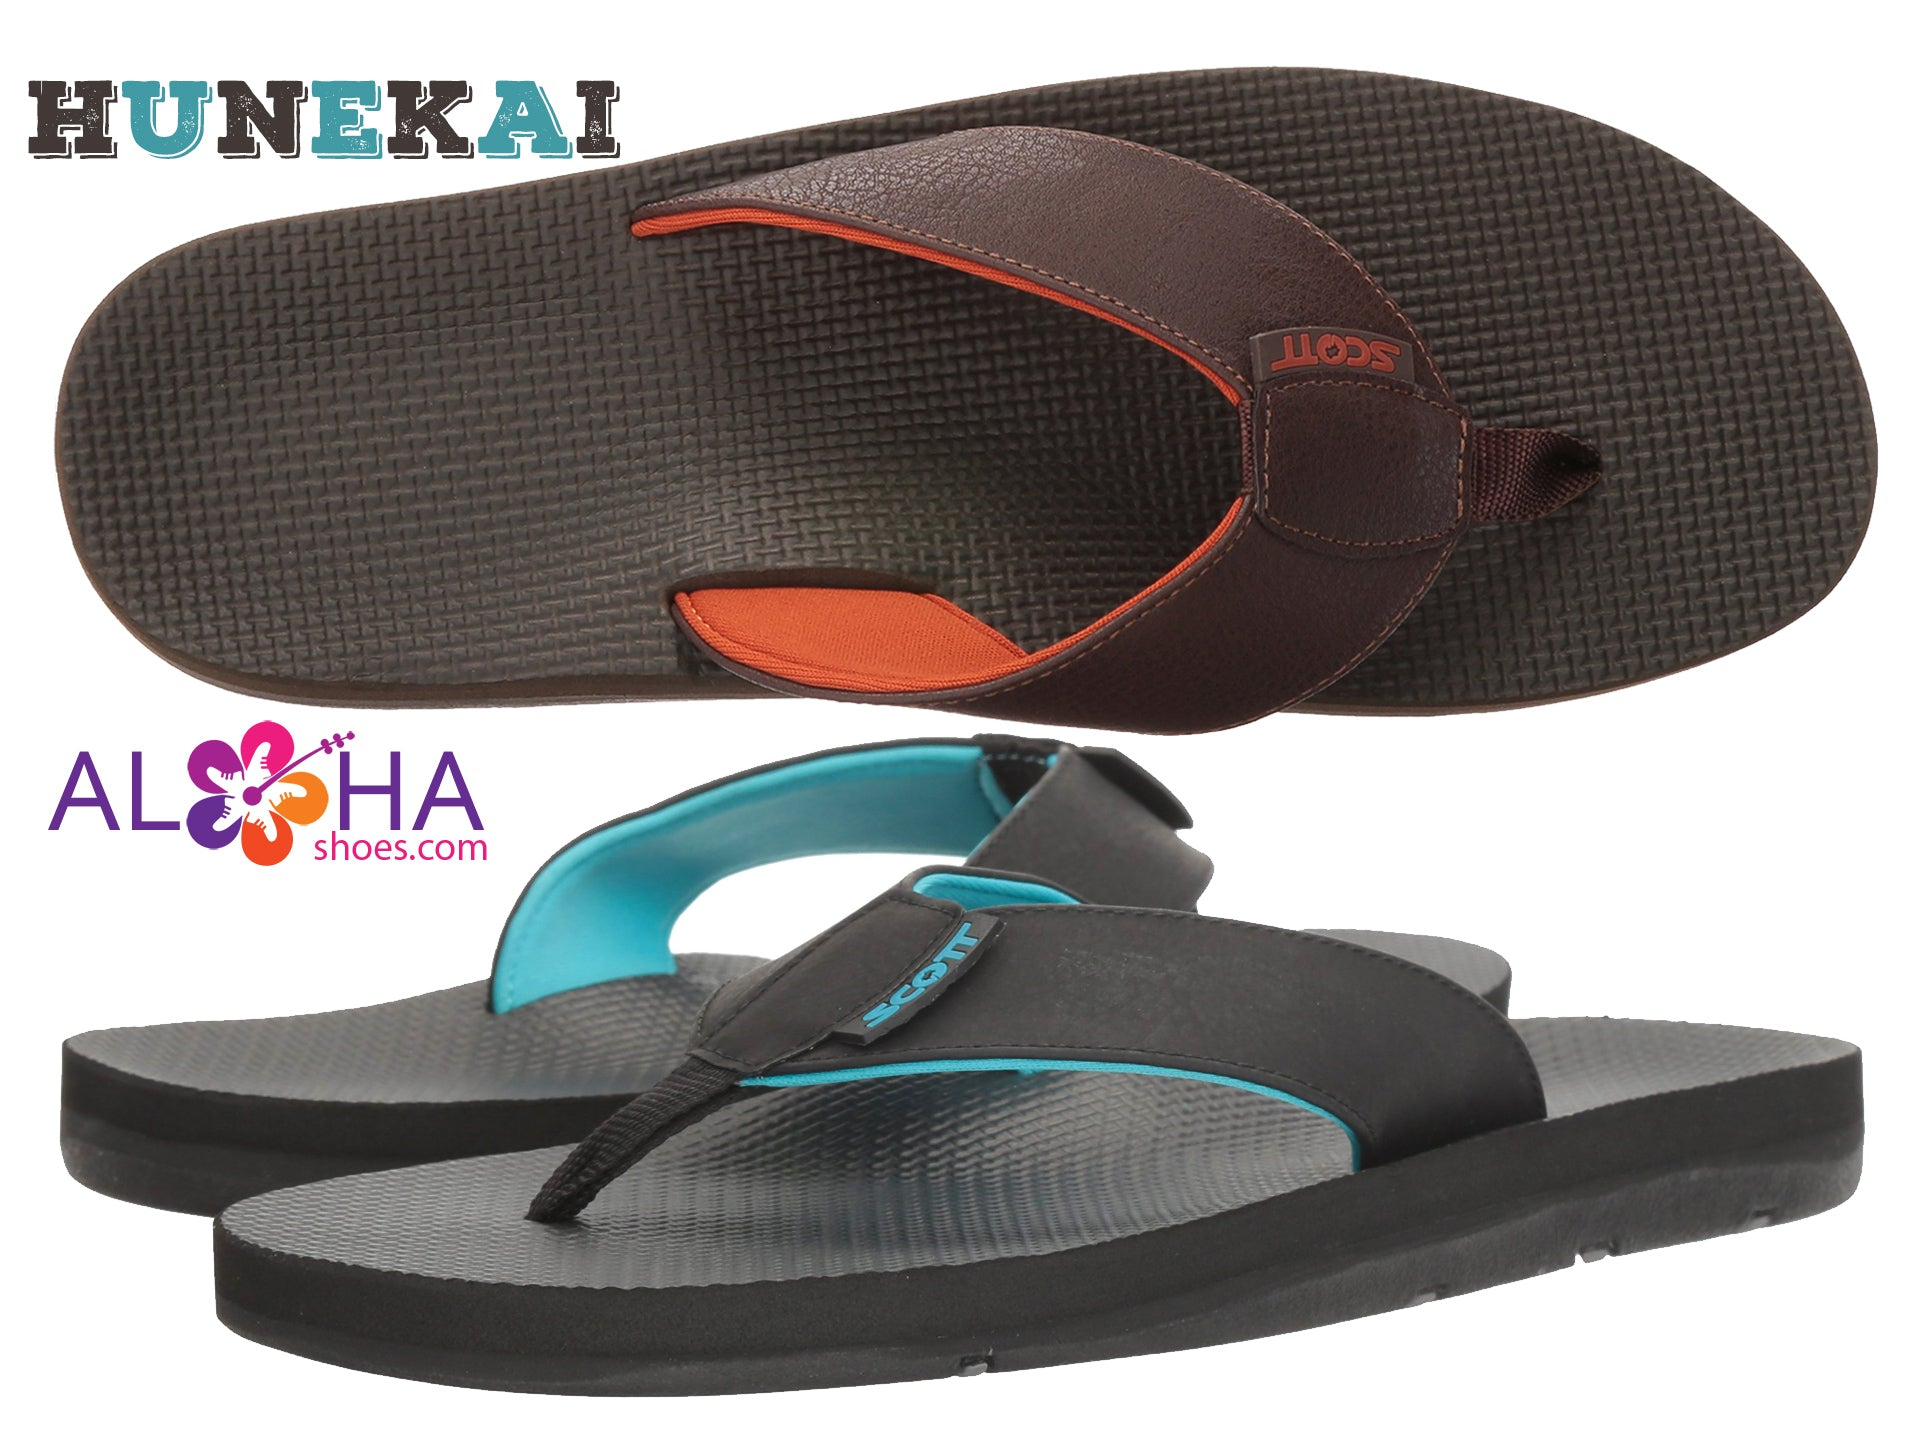 Scott Hawaii Men's Hunekai Leather Sandals Dual Density- AlohaShoes.com